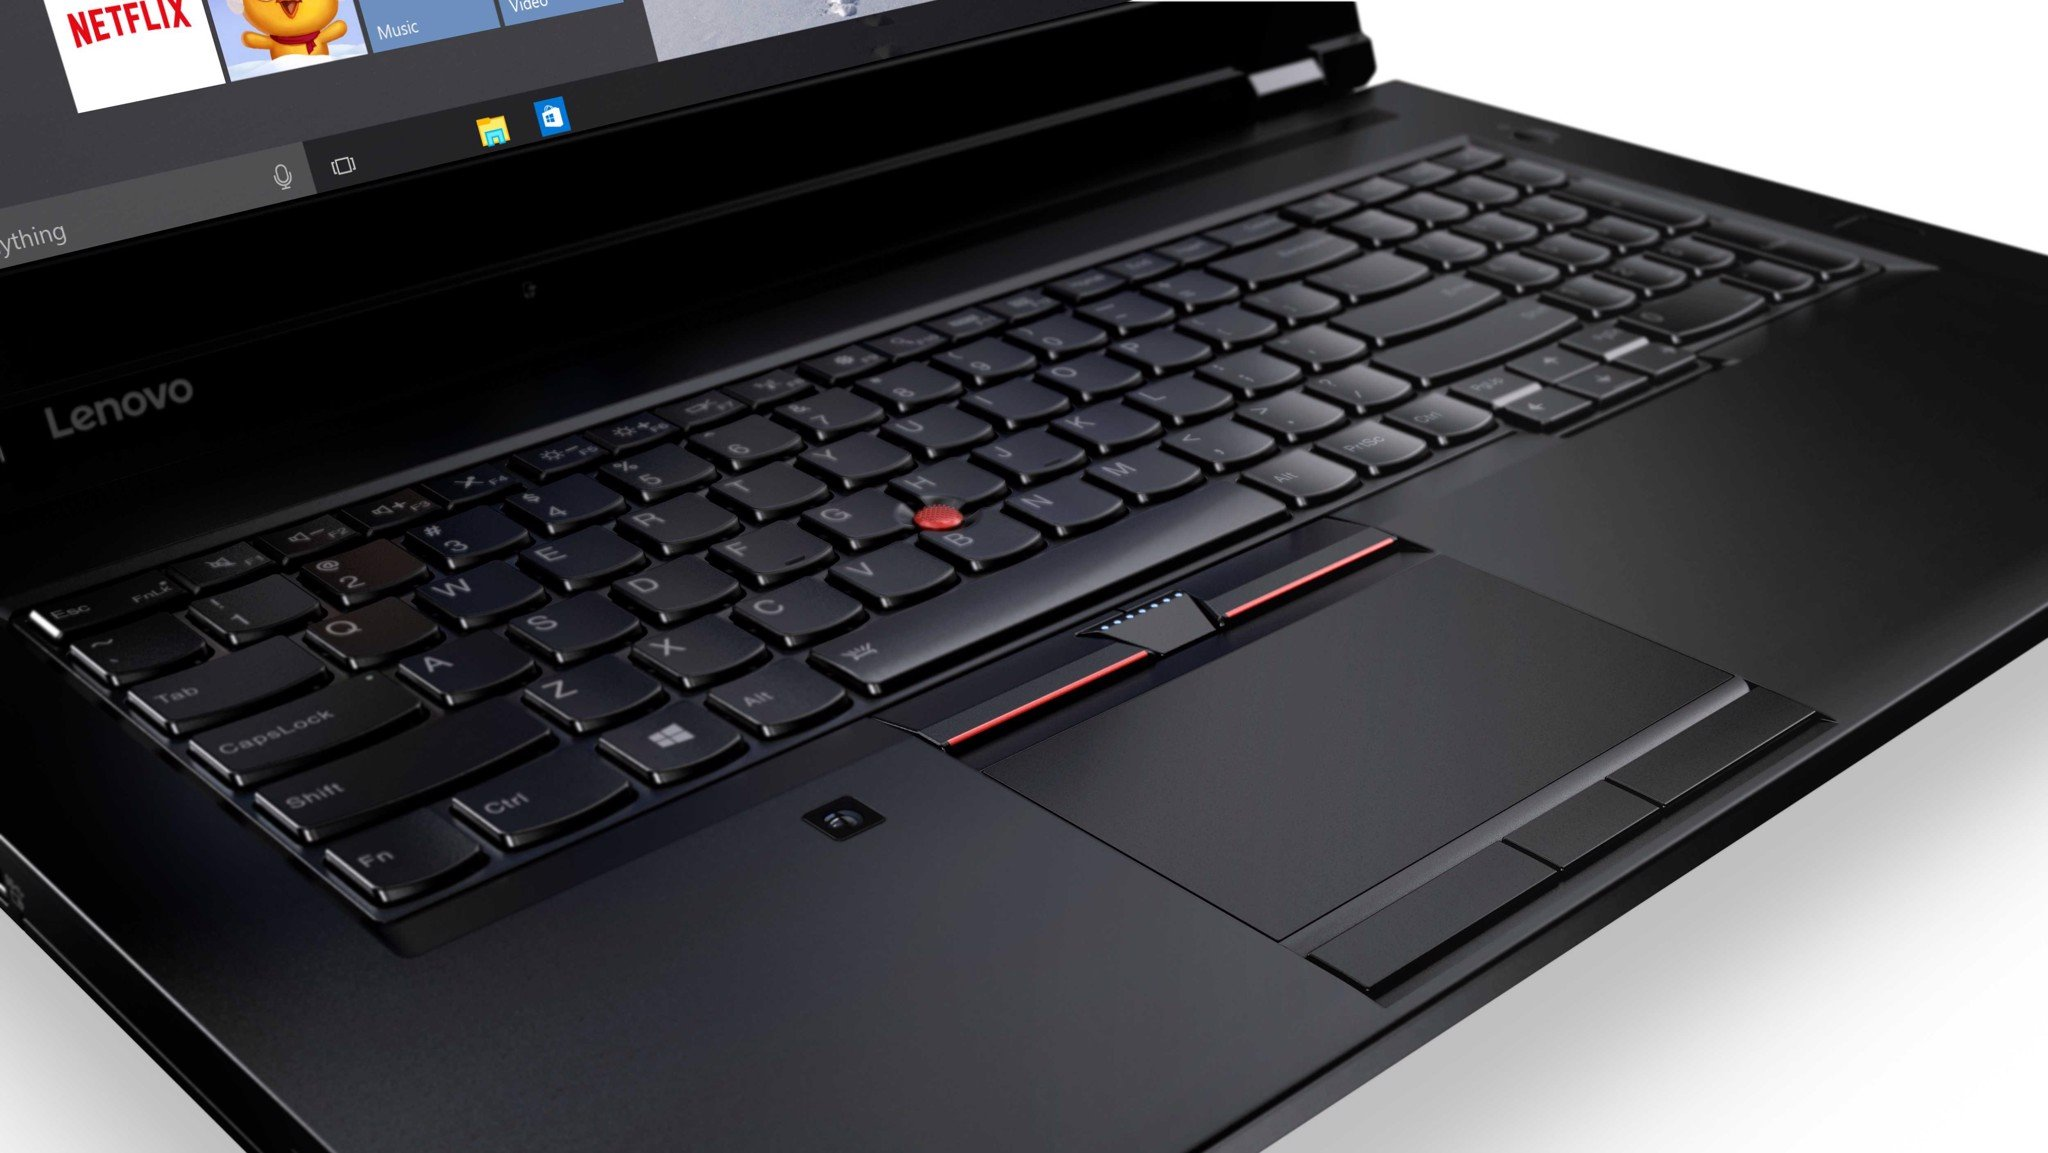 Lenovo Thinkpad P50 Core i7-6820HQ